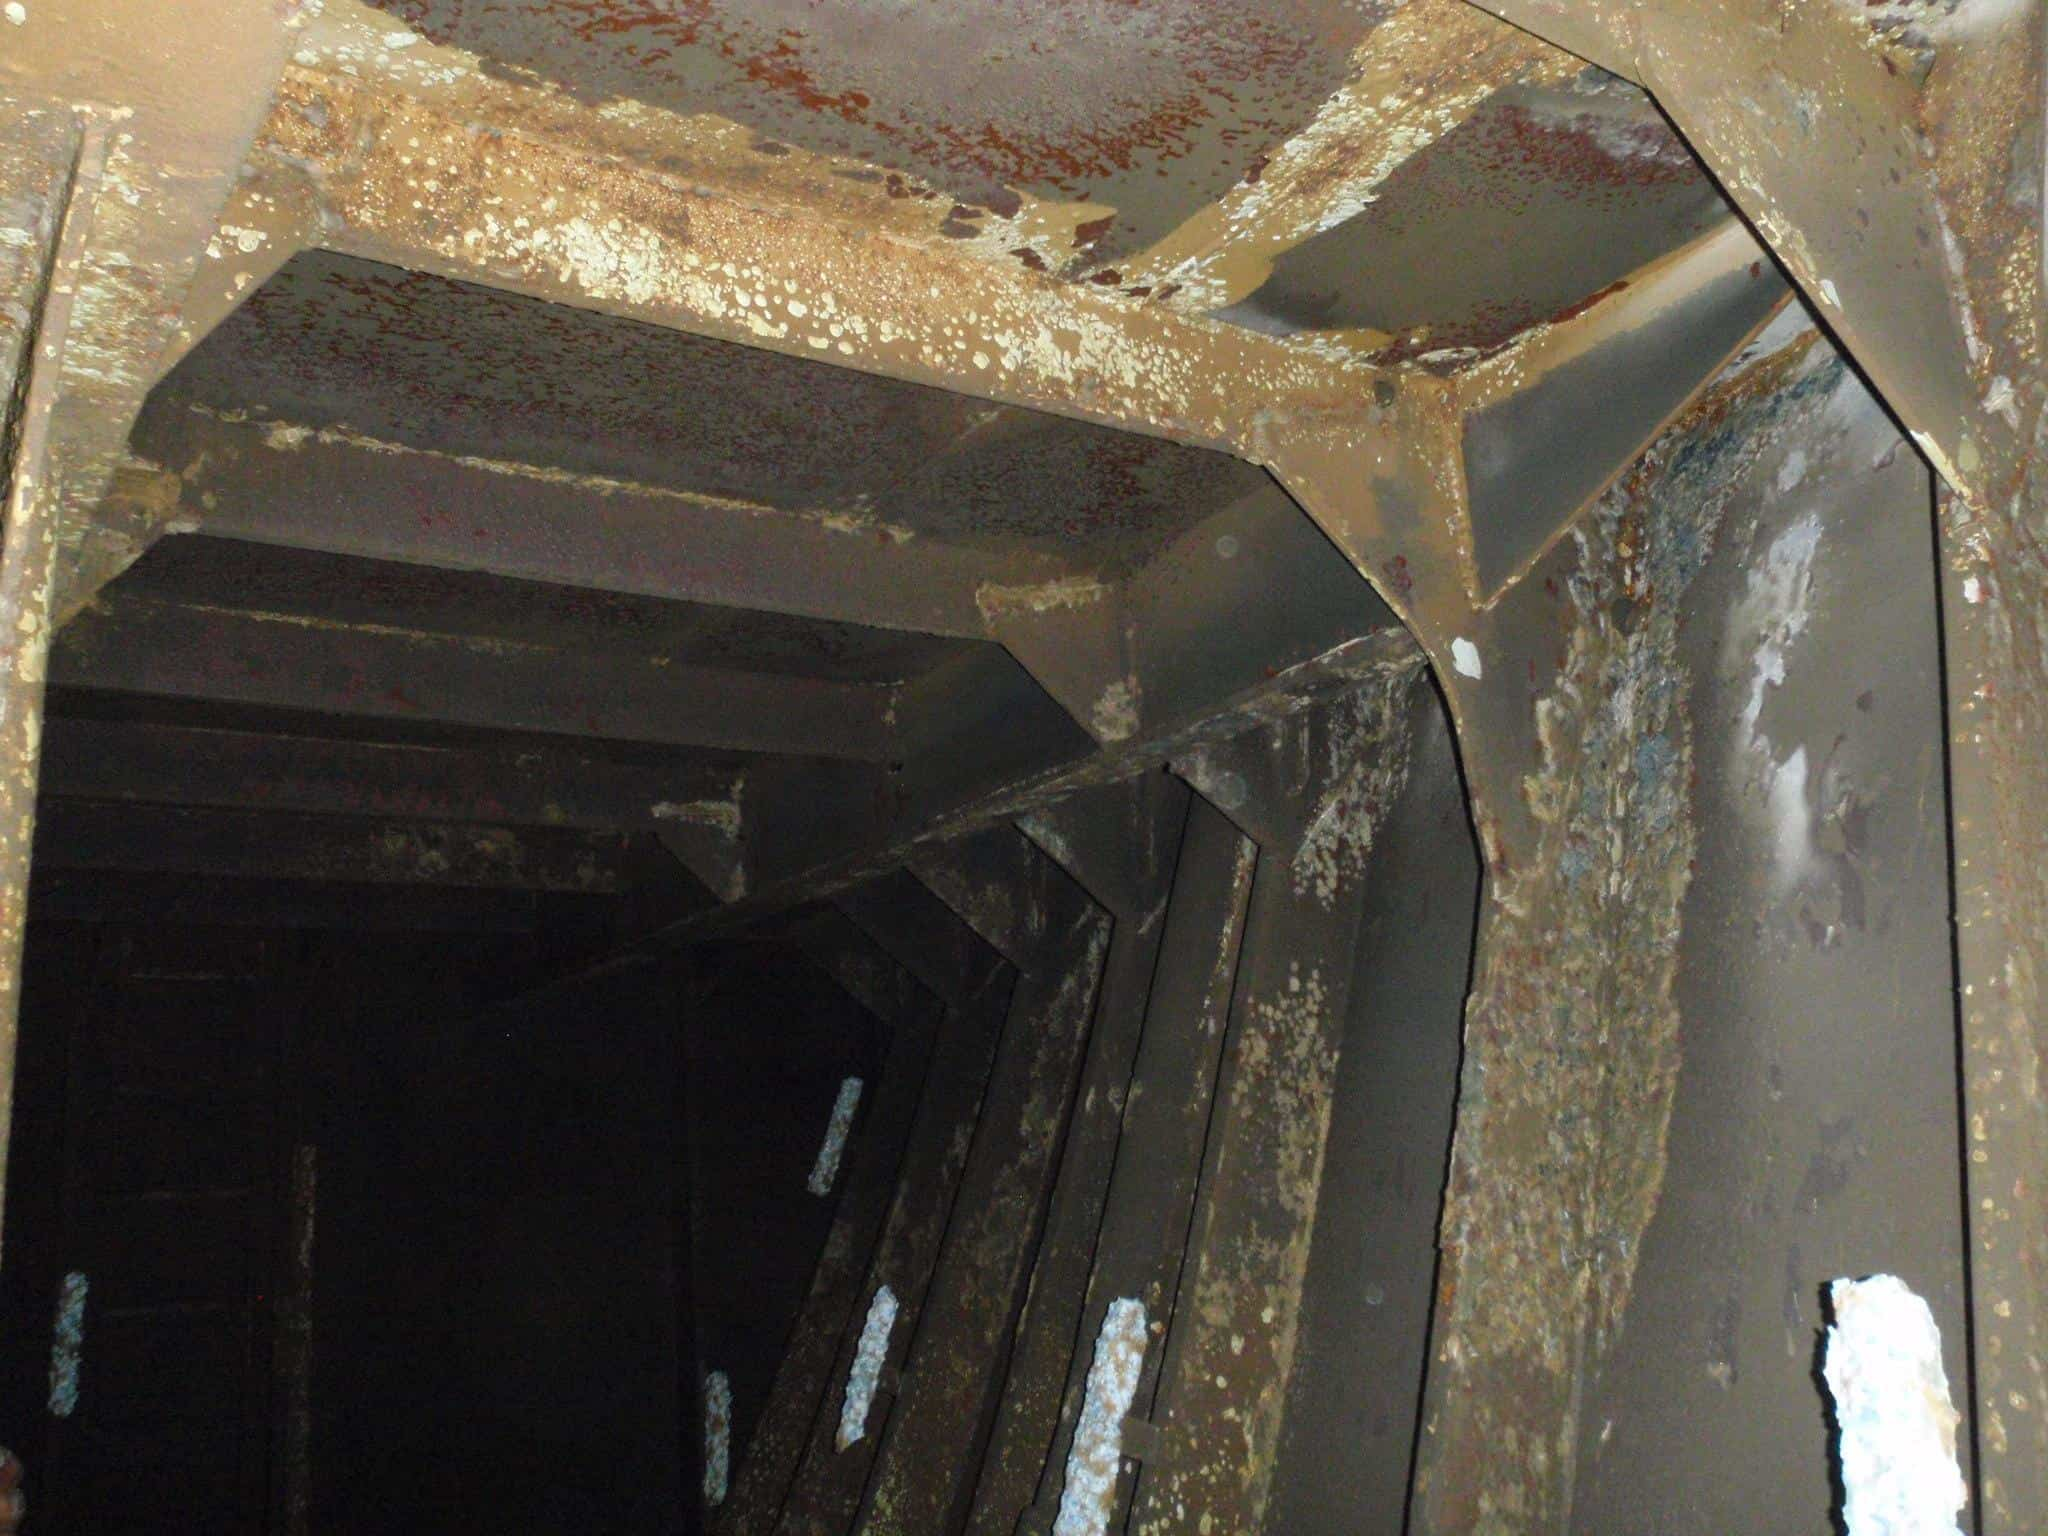 corroded ballast tank internal walls